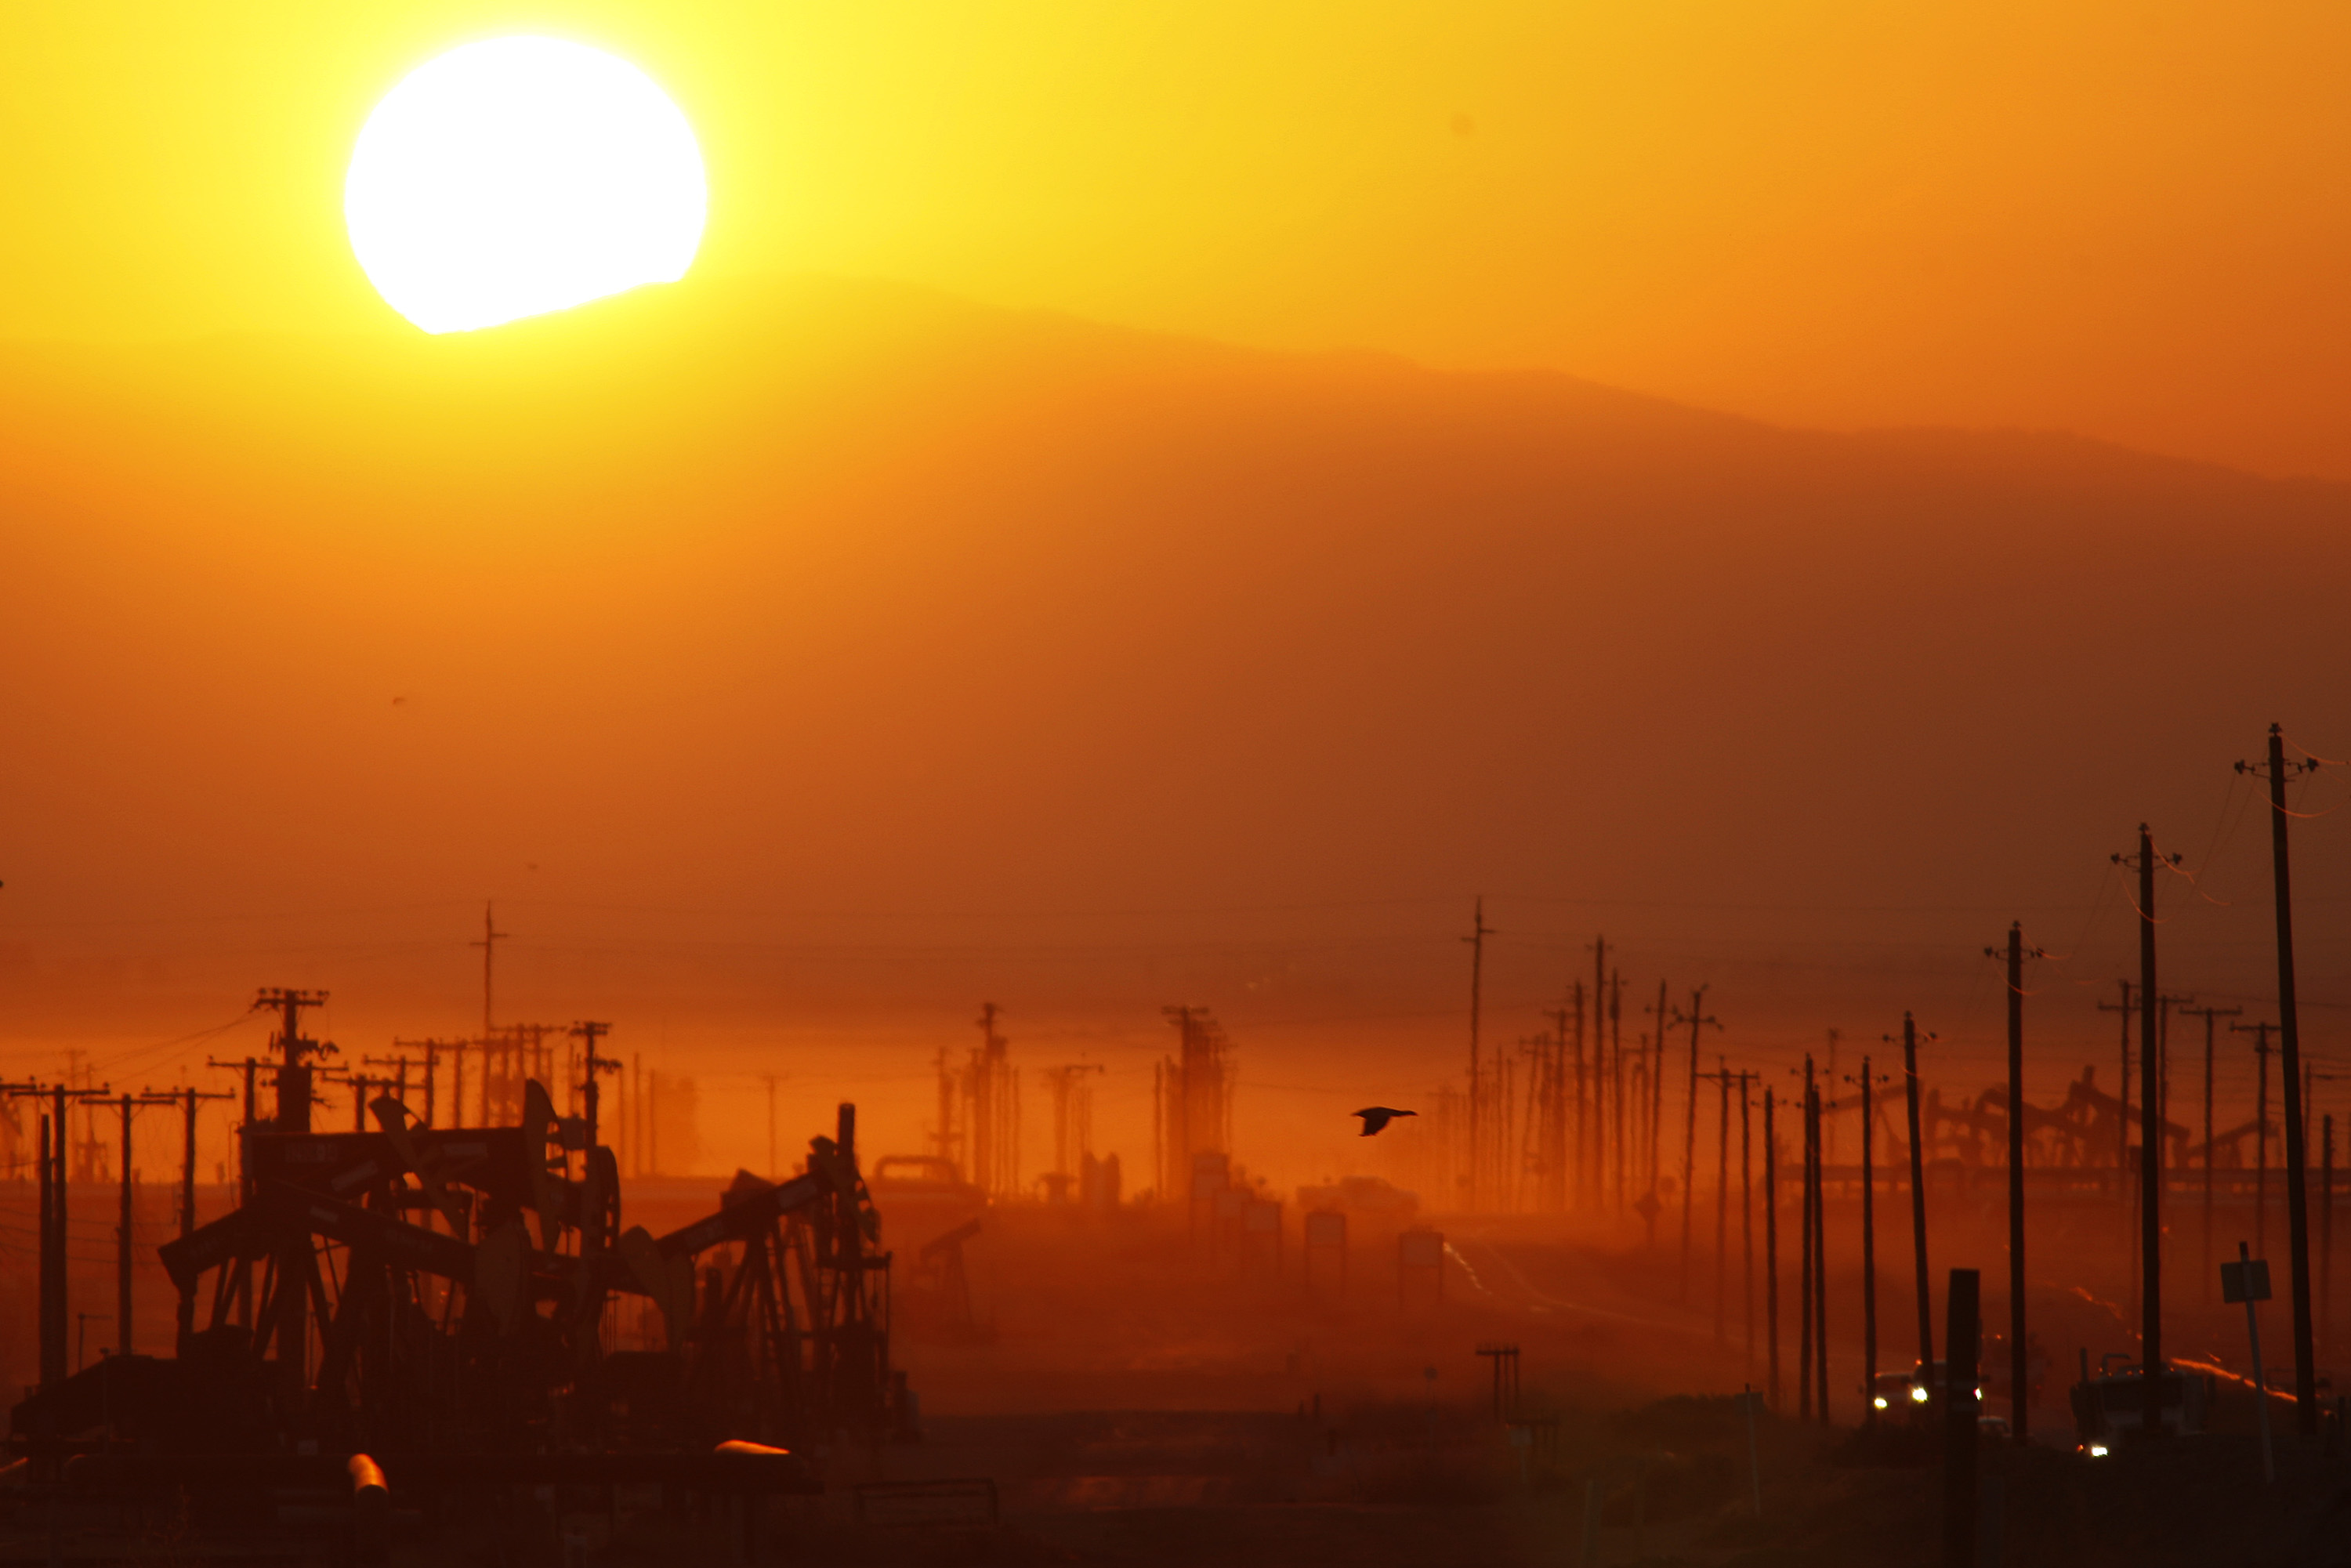 The sun rises over an oil field over the Monterey Shale formation where gas and oil extraction using hydraulic fracturing, or fracking, is on the verge of a boom on March 24, 2014 near Lost Hills, California.